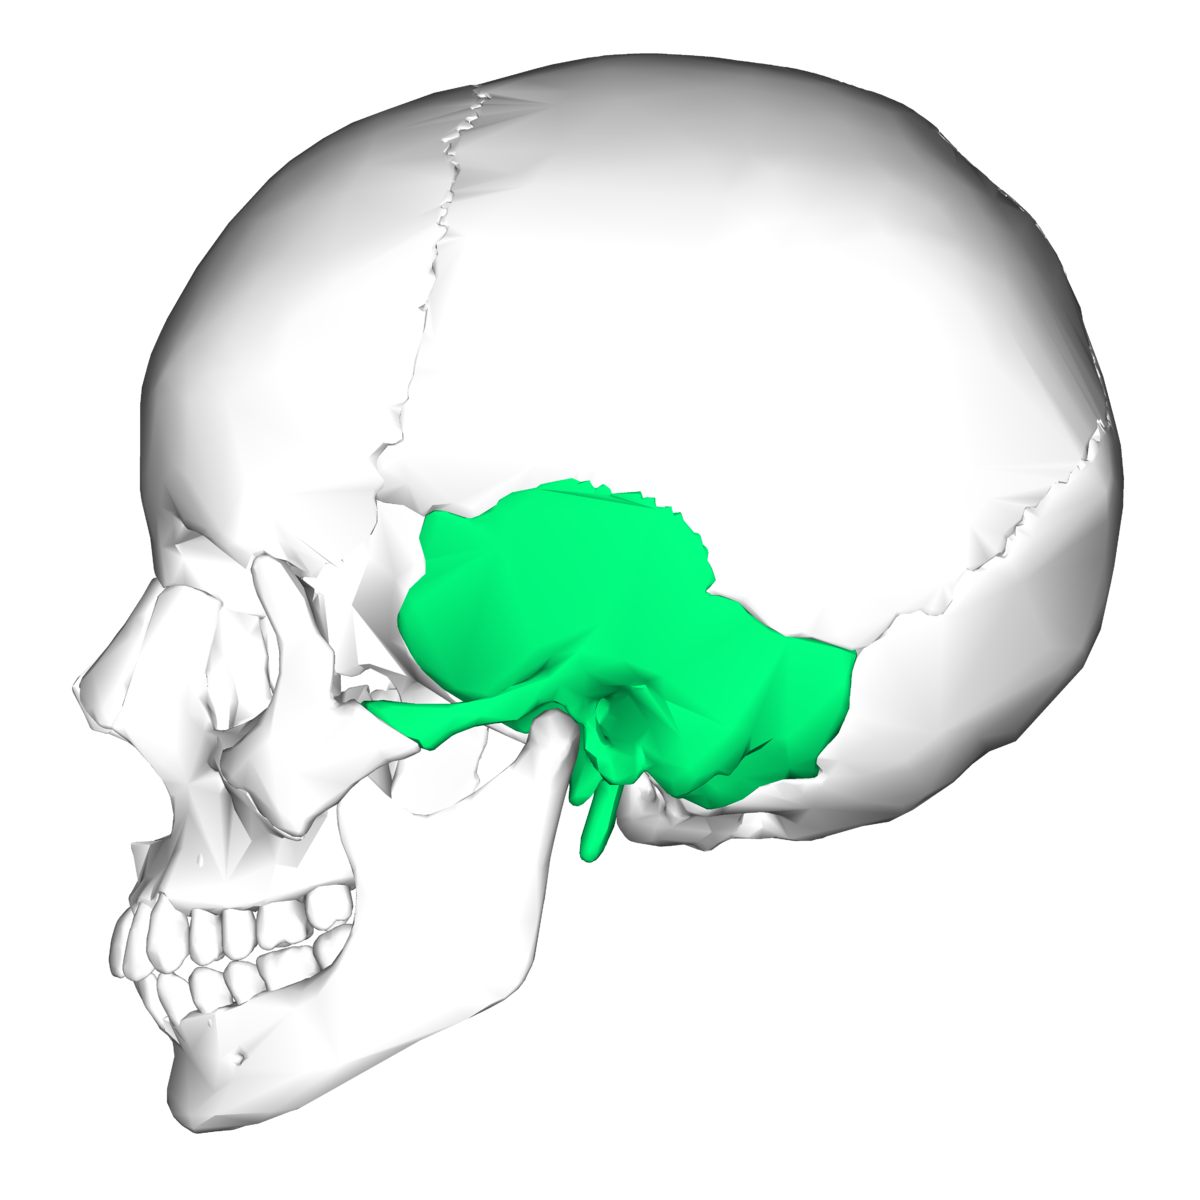 Temporal Bone Wikipedia